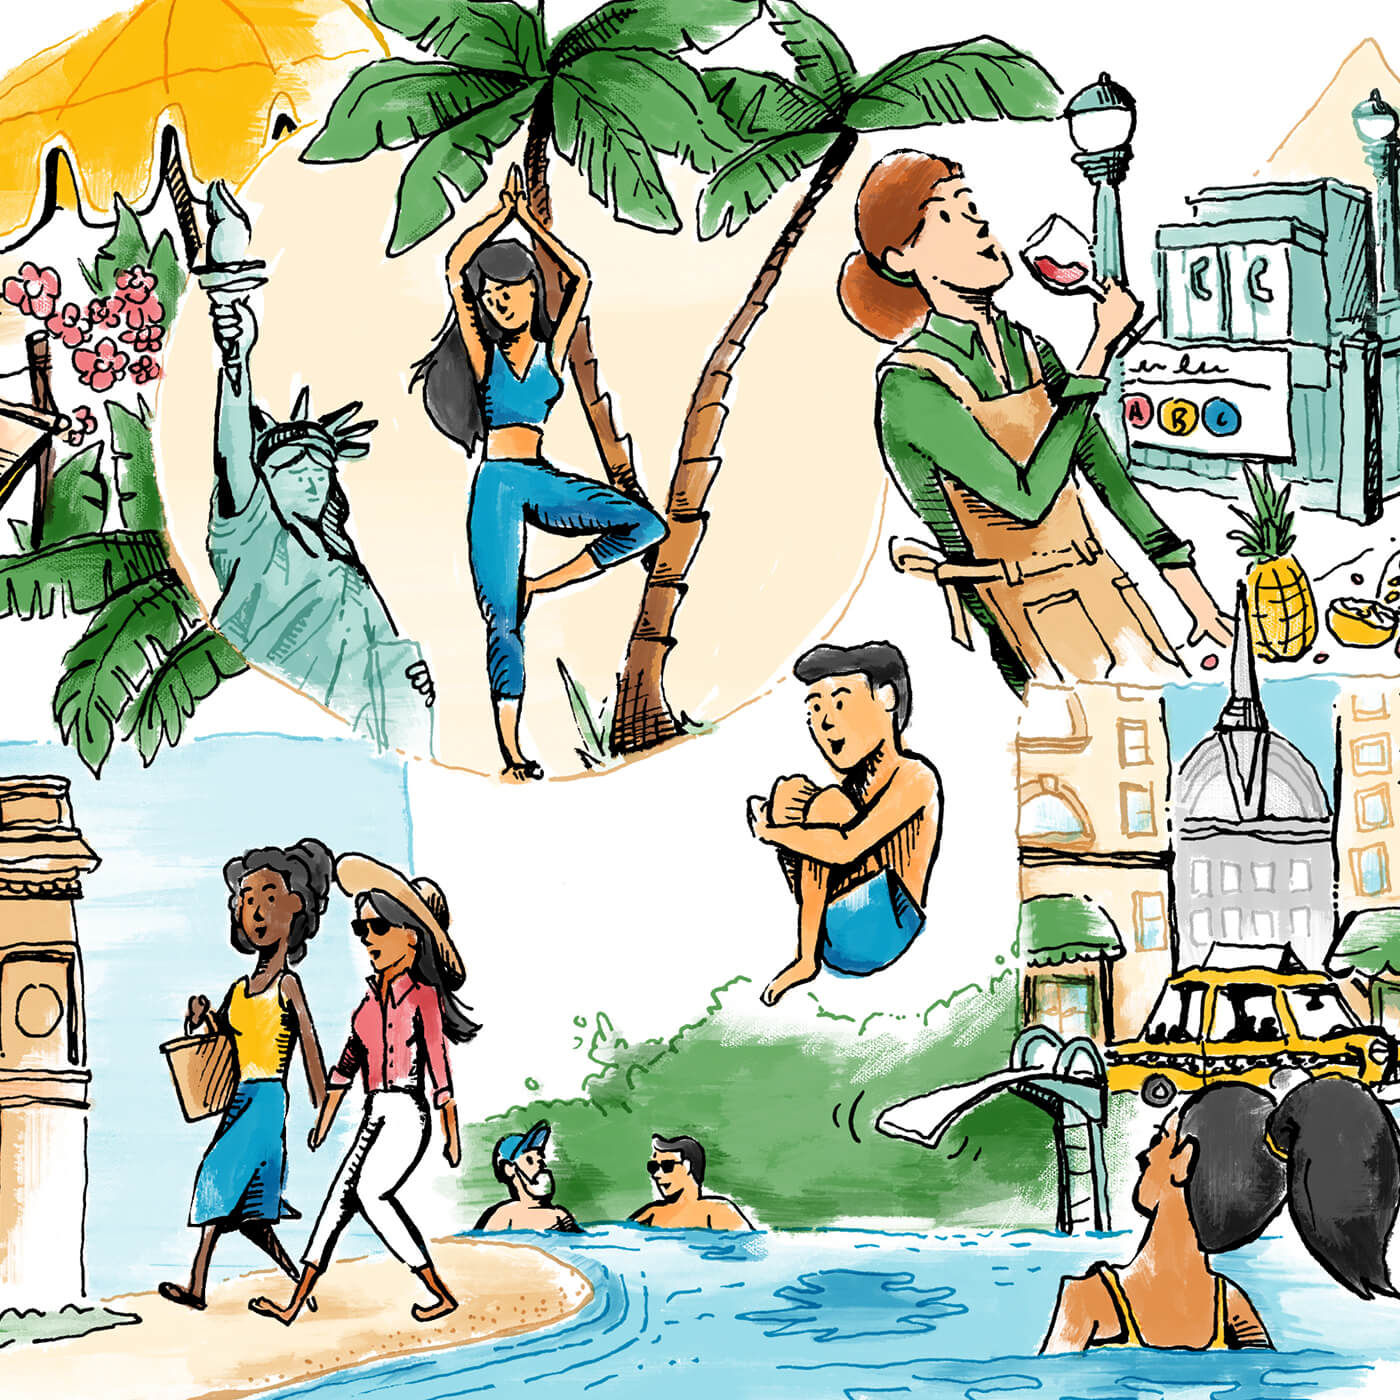 New York Magazine, Vacations - Illustrations for New York Magazine's series on tips and tricks for New Yorkers escaping winter in the city for warm, Caribbean vacations.IllustrationView Project →